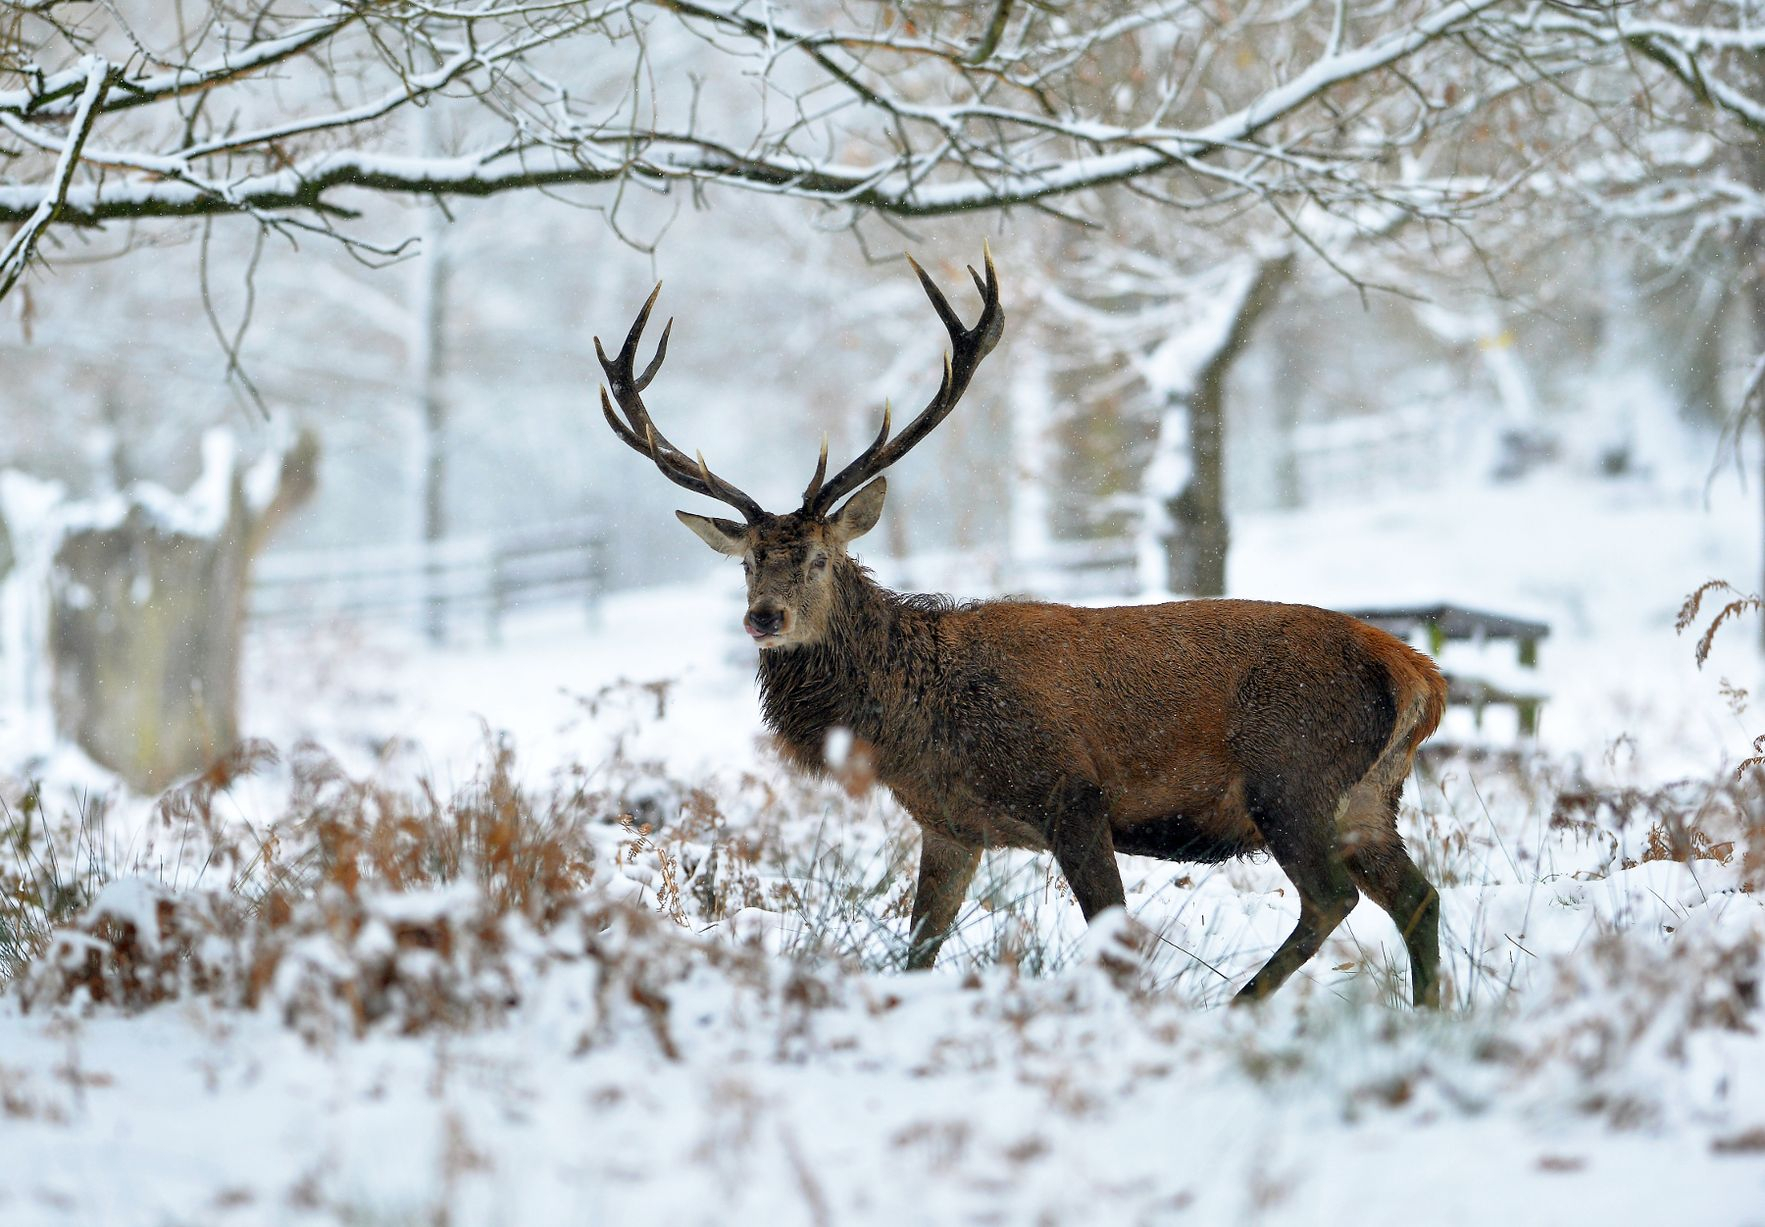 12 Absolutely Stunning Images From The Bradgate Park 2021 inside Bradgate Deer Rut 2021